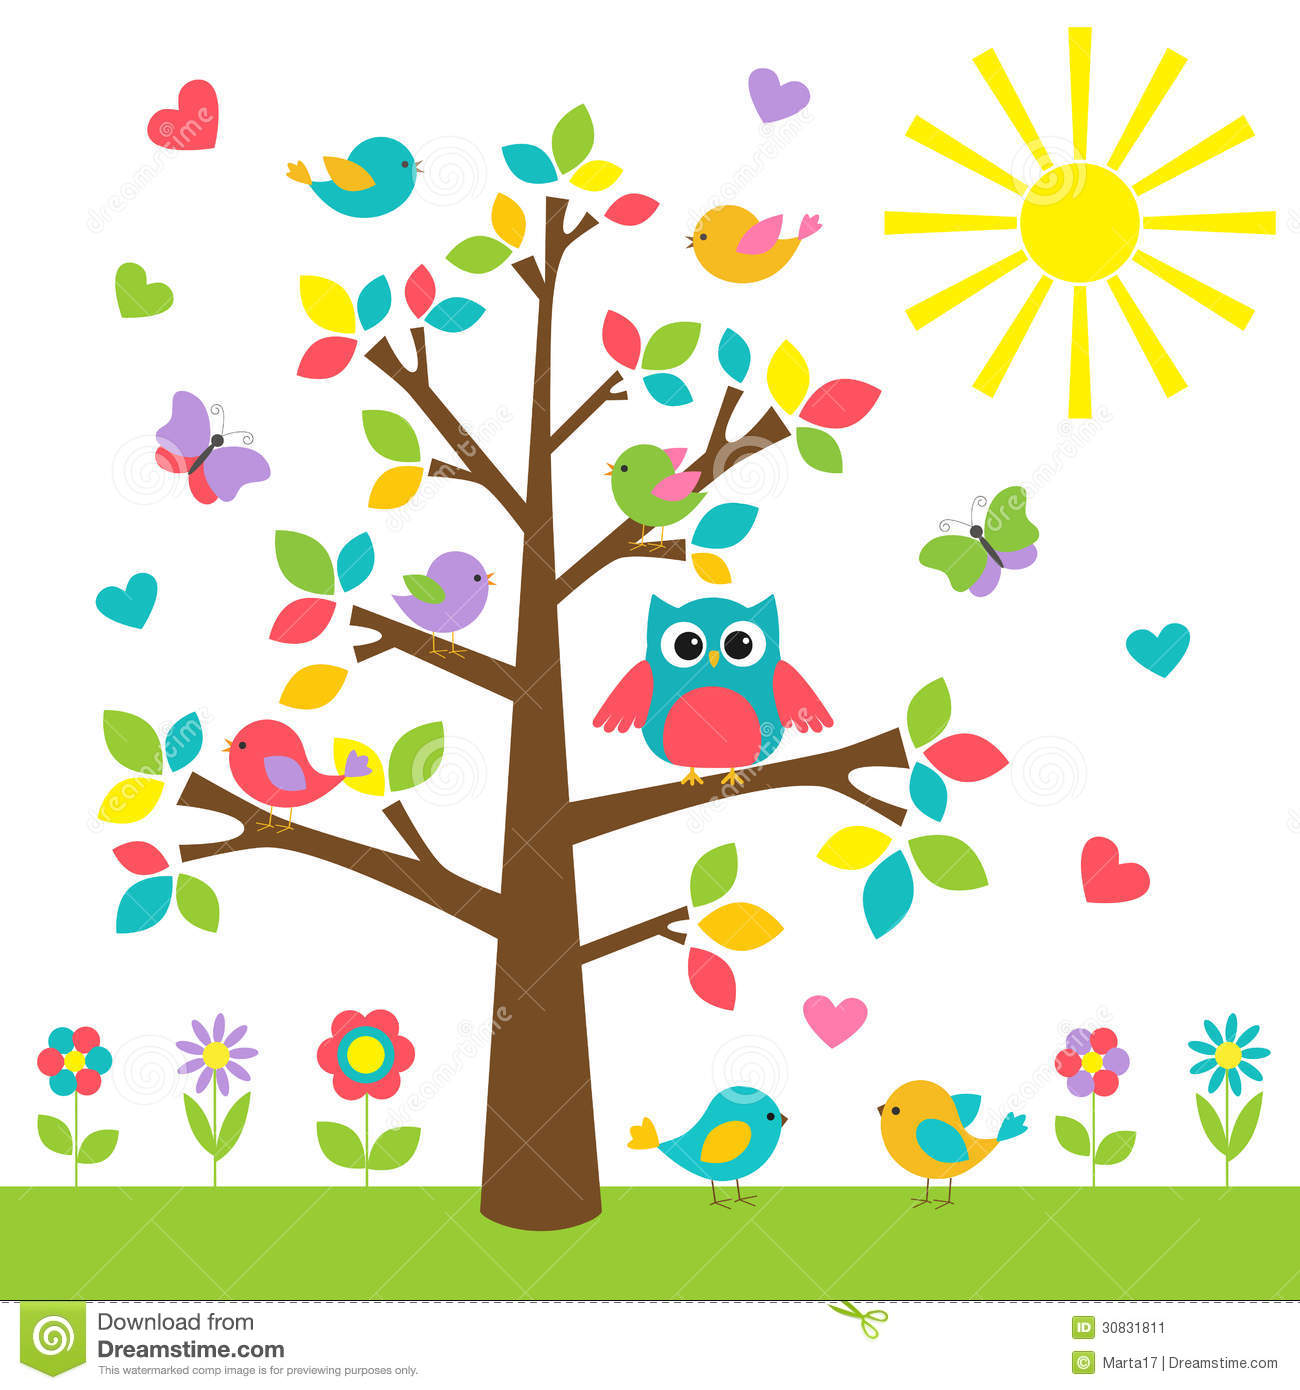 Cute Owl Cartoon Wallpaper Colorful Tree Stock Image Image 30831811